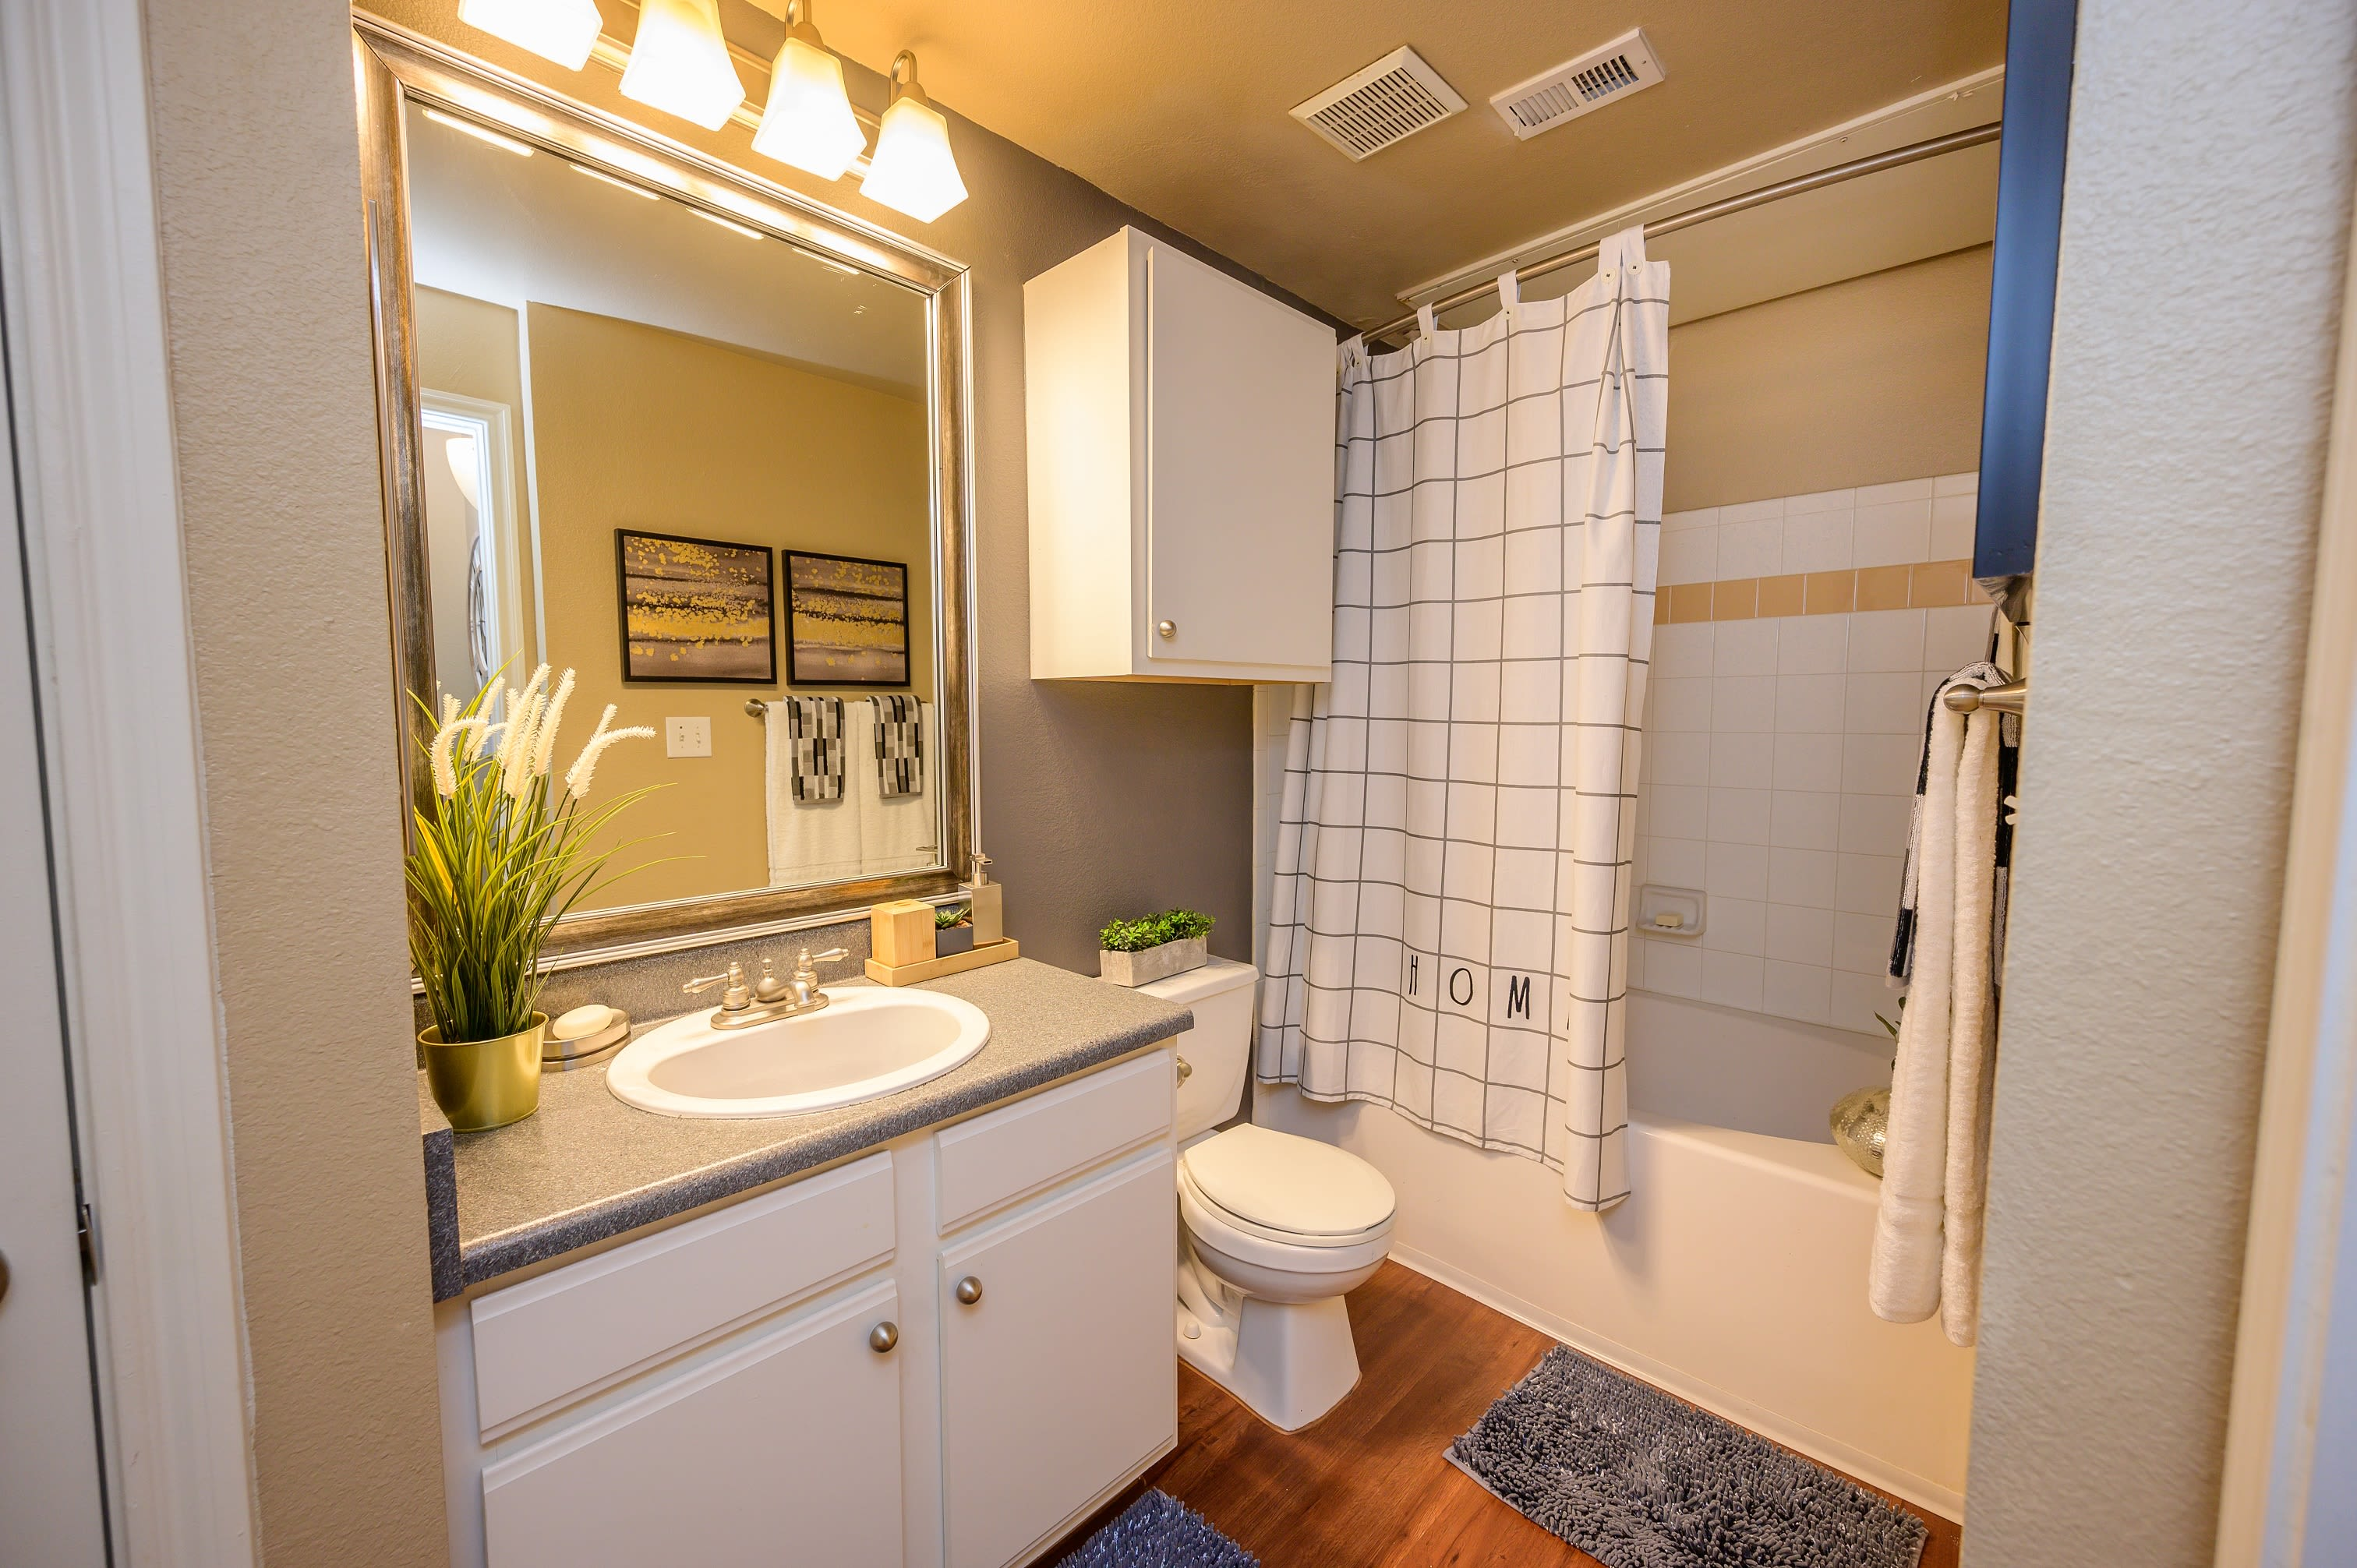 Luxurious bathroom with tub at Alon at Castle Hills in San Antonio, Texas